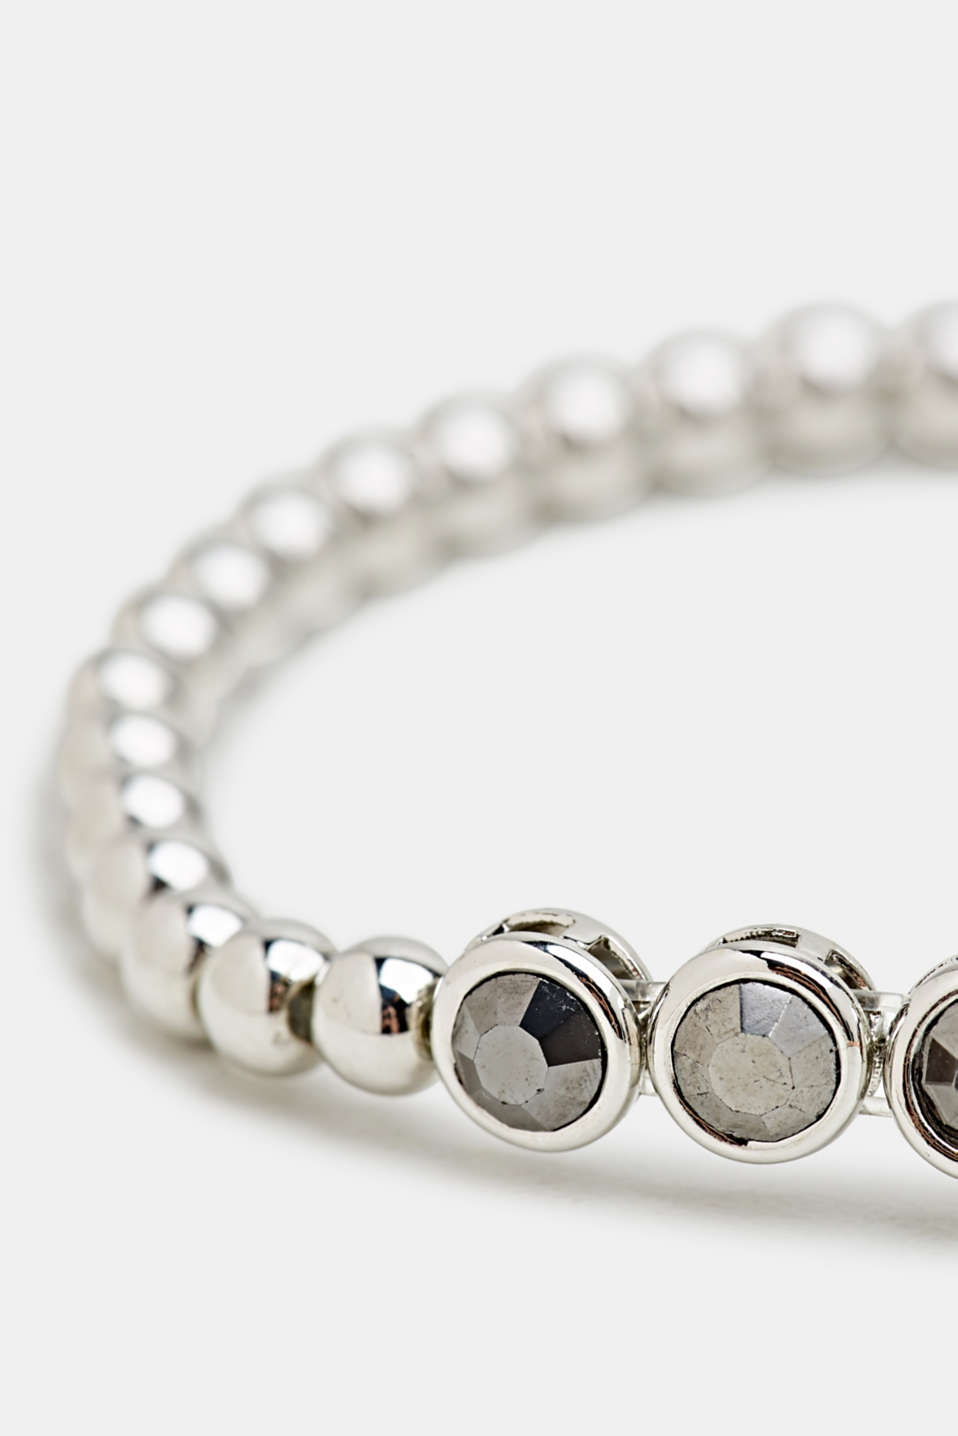 Stretchy metallic bracelet with beads, LC1COLOR, detail image number 1